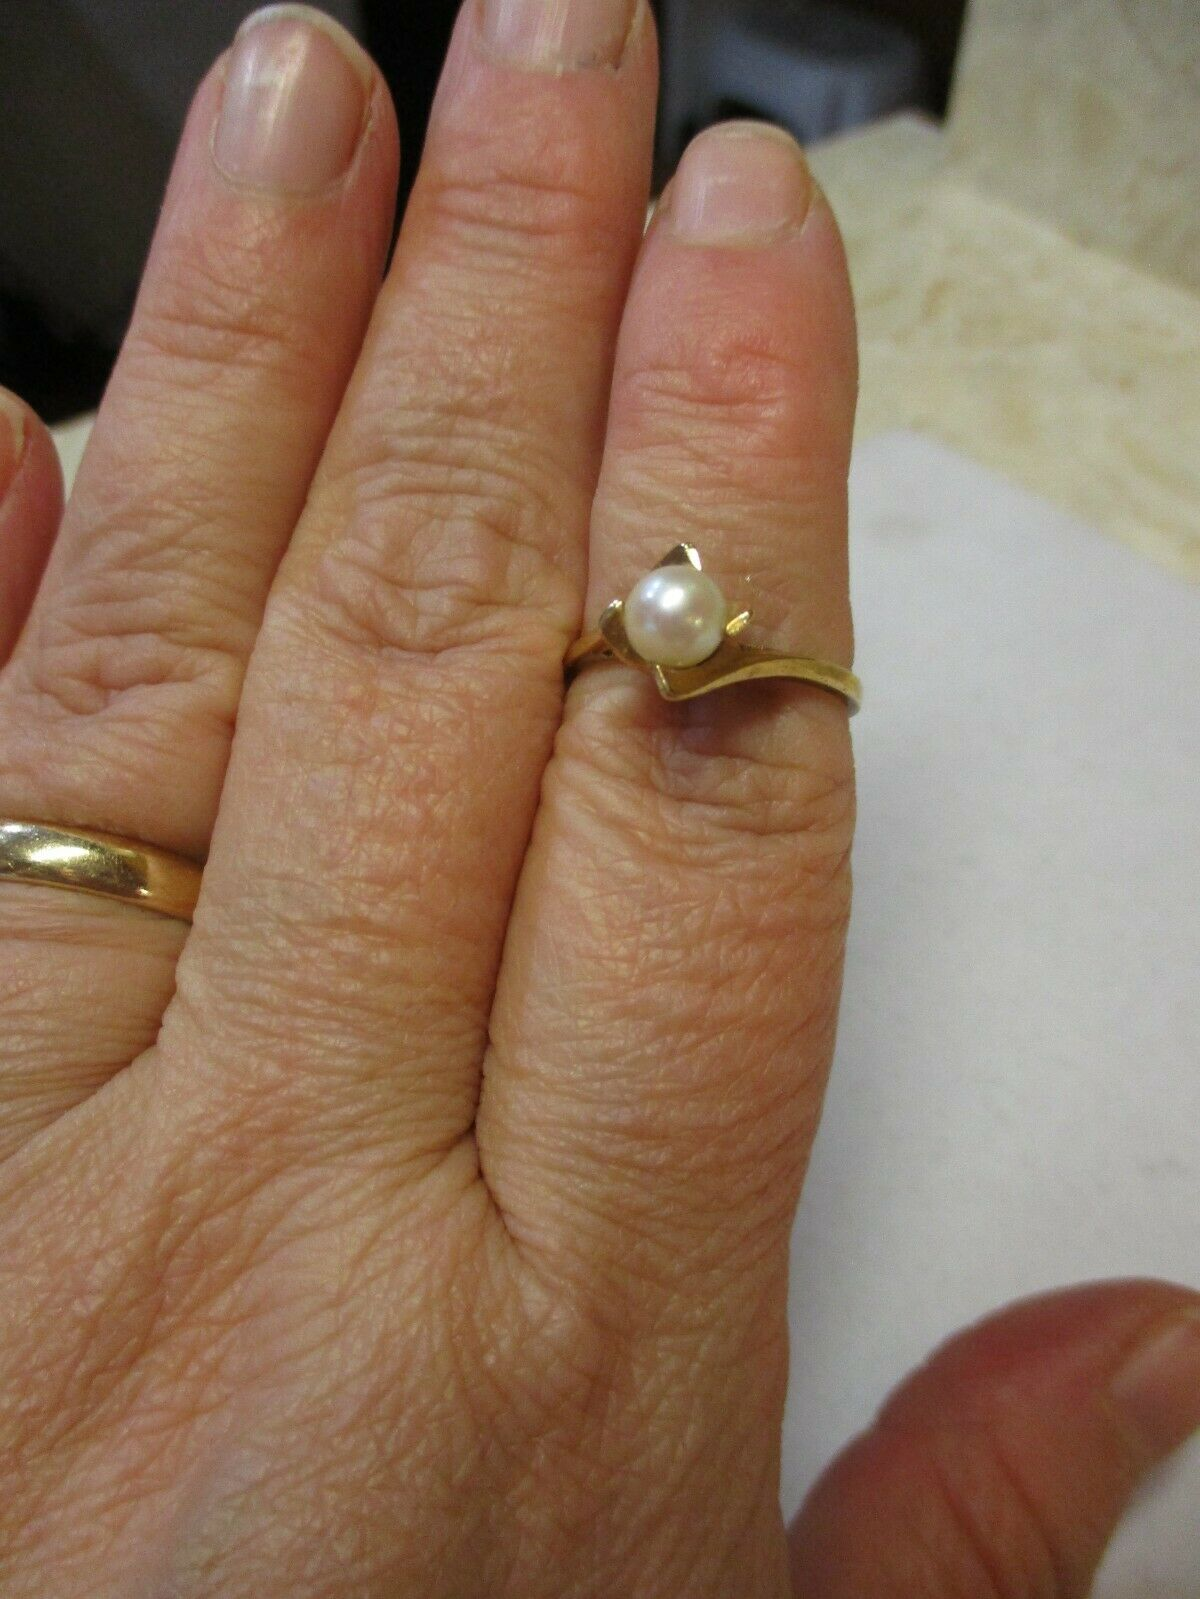 14K Yellow Gold Pearl Solitaire Ring Size 7.5 - image 8